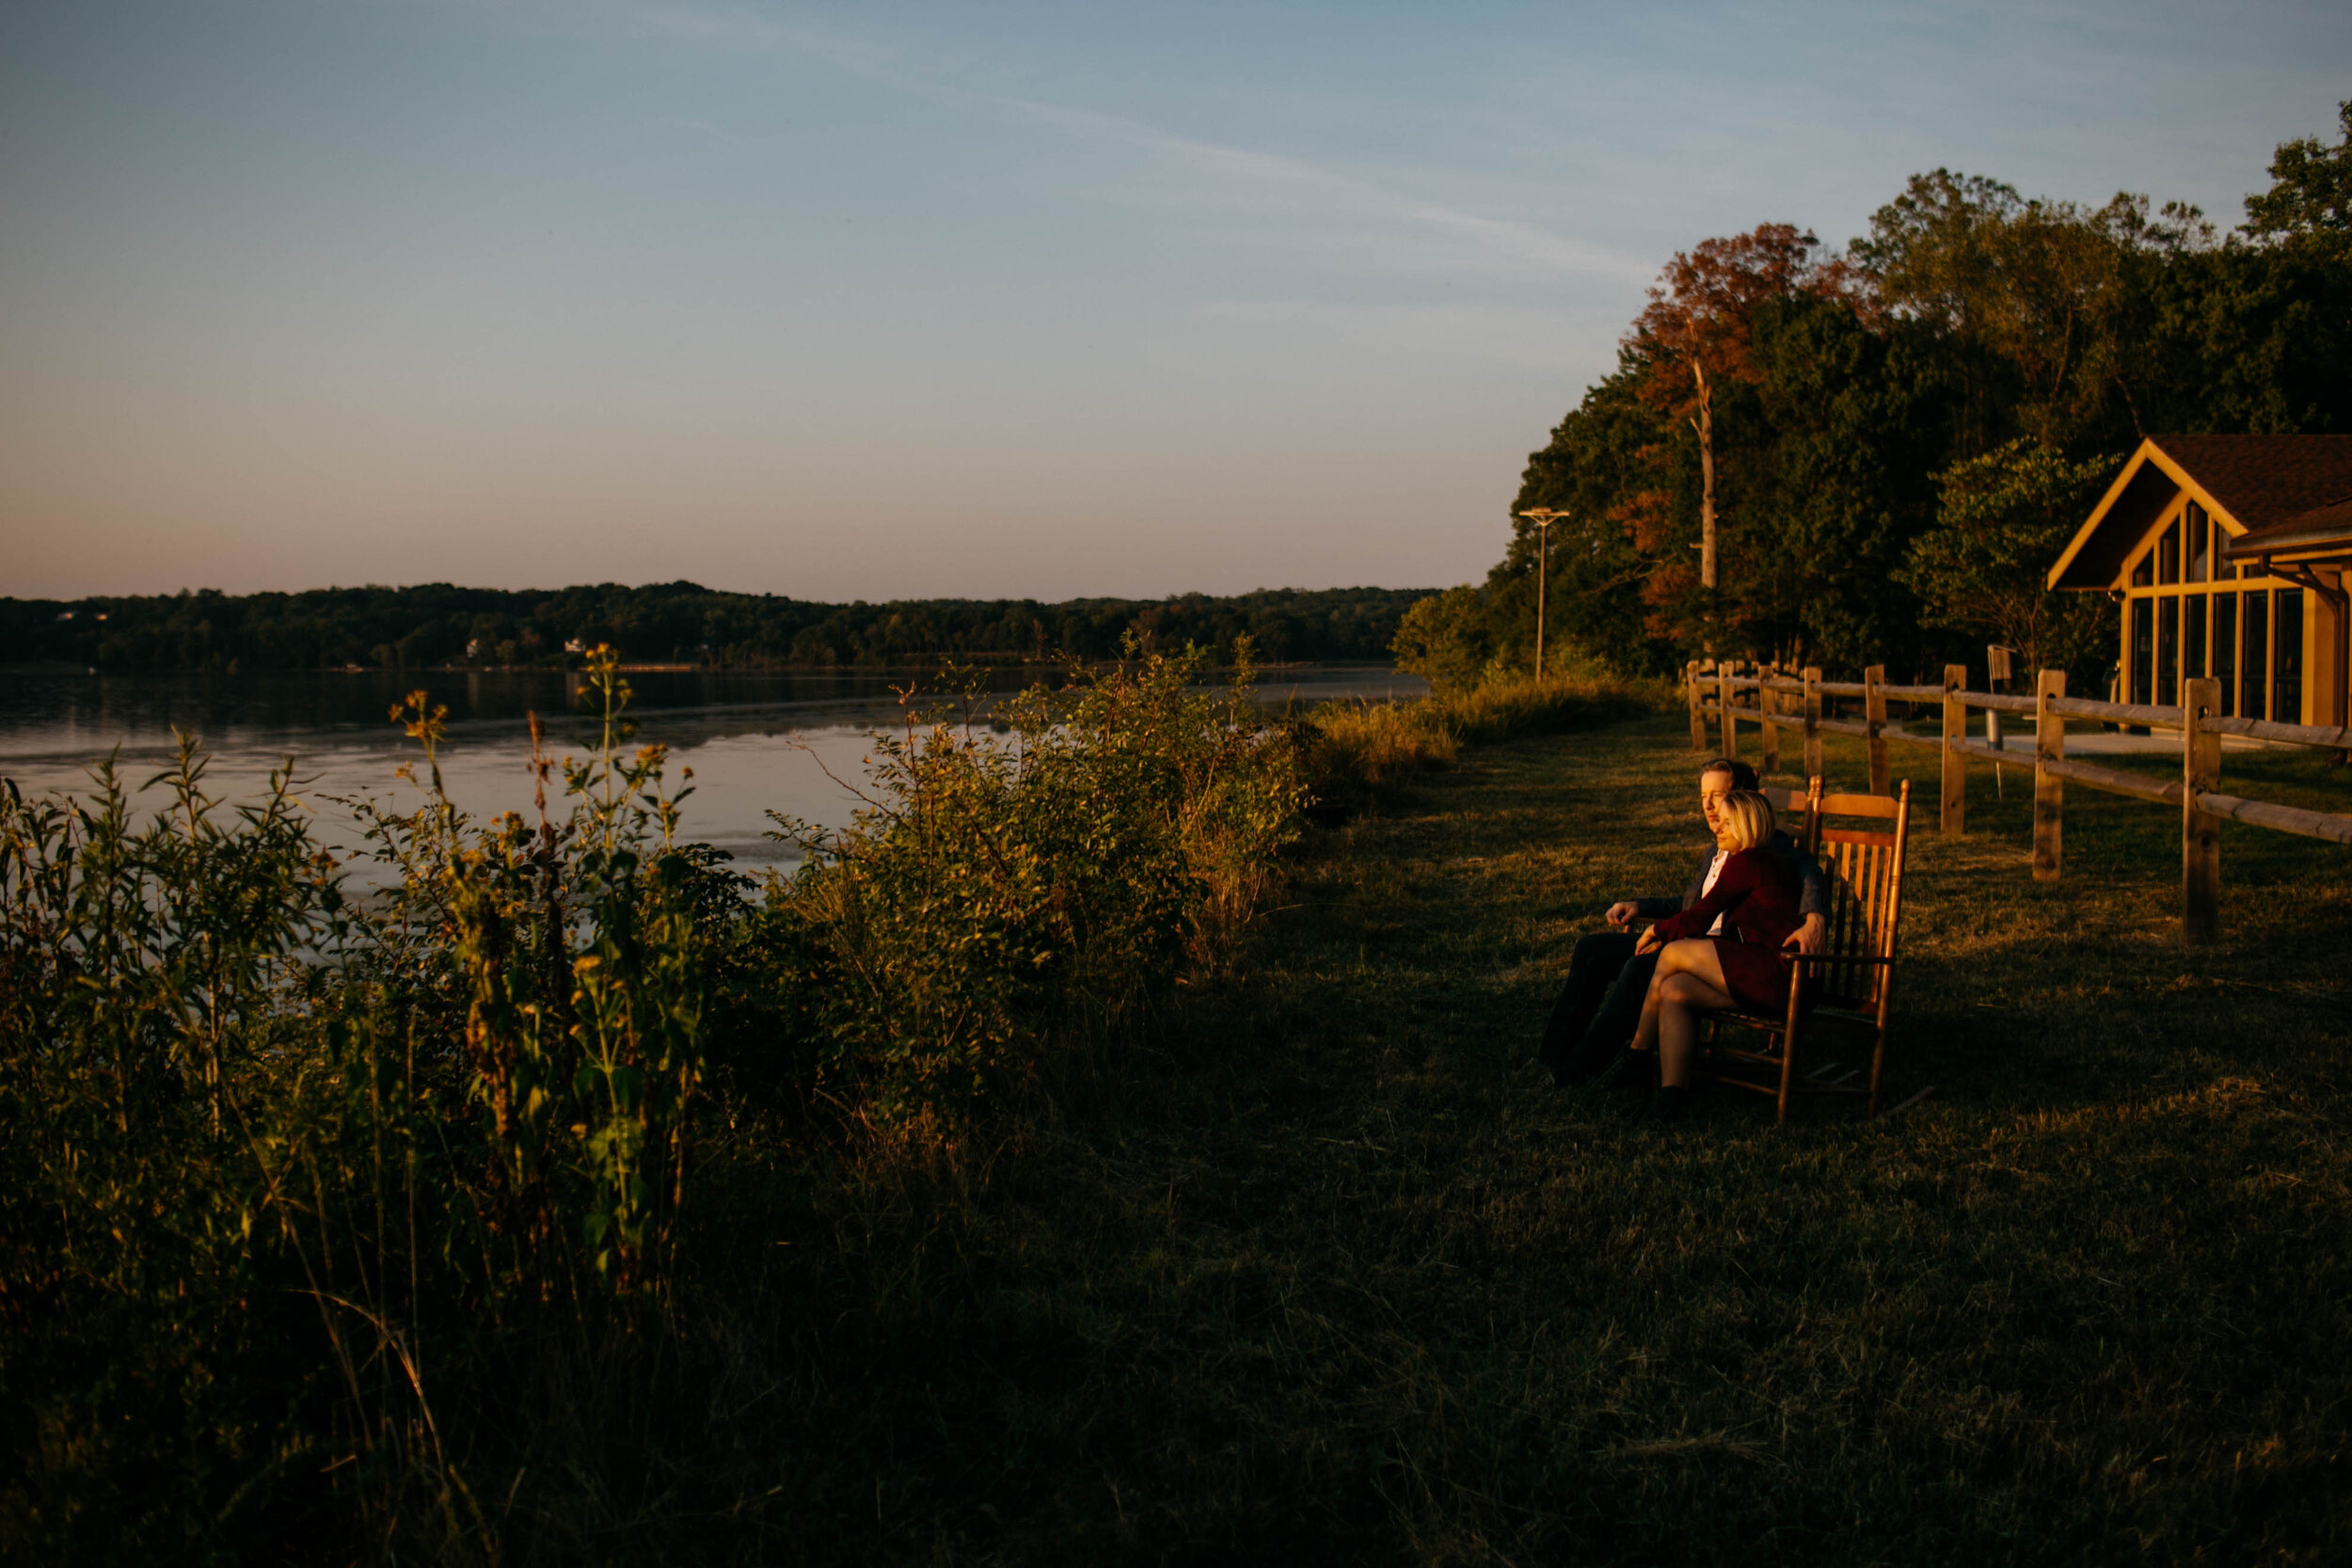 sasha_garth_engagement_mason_neck_state_park_summer_sunset_green_Forest-10.jpg